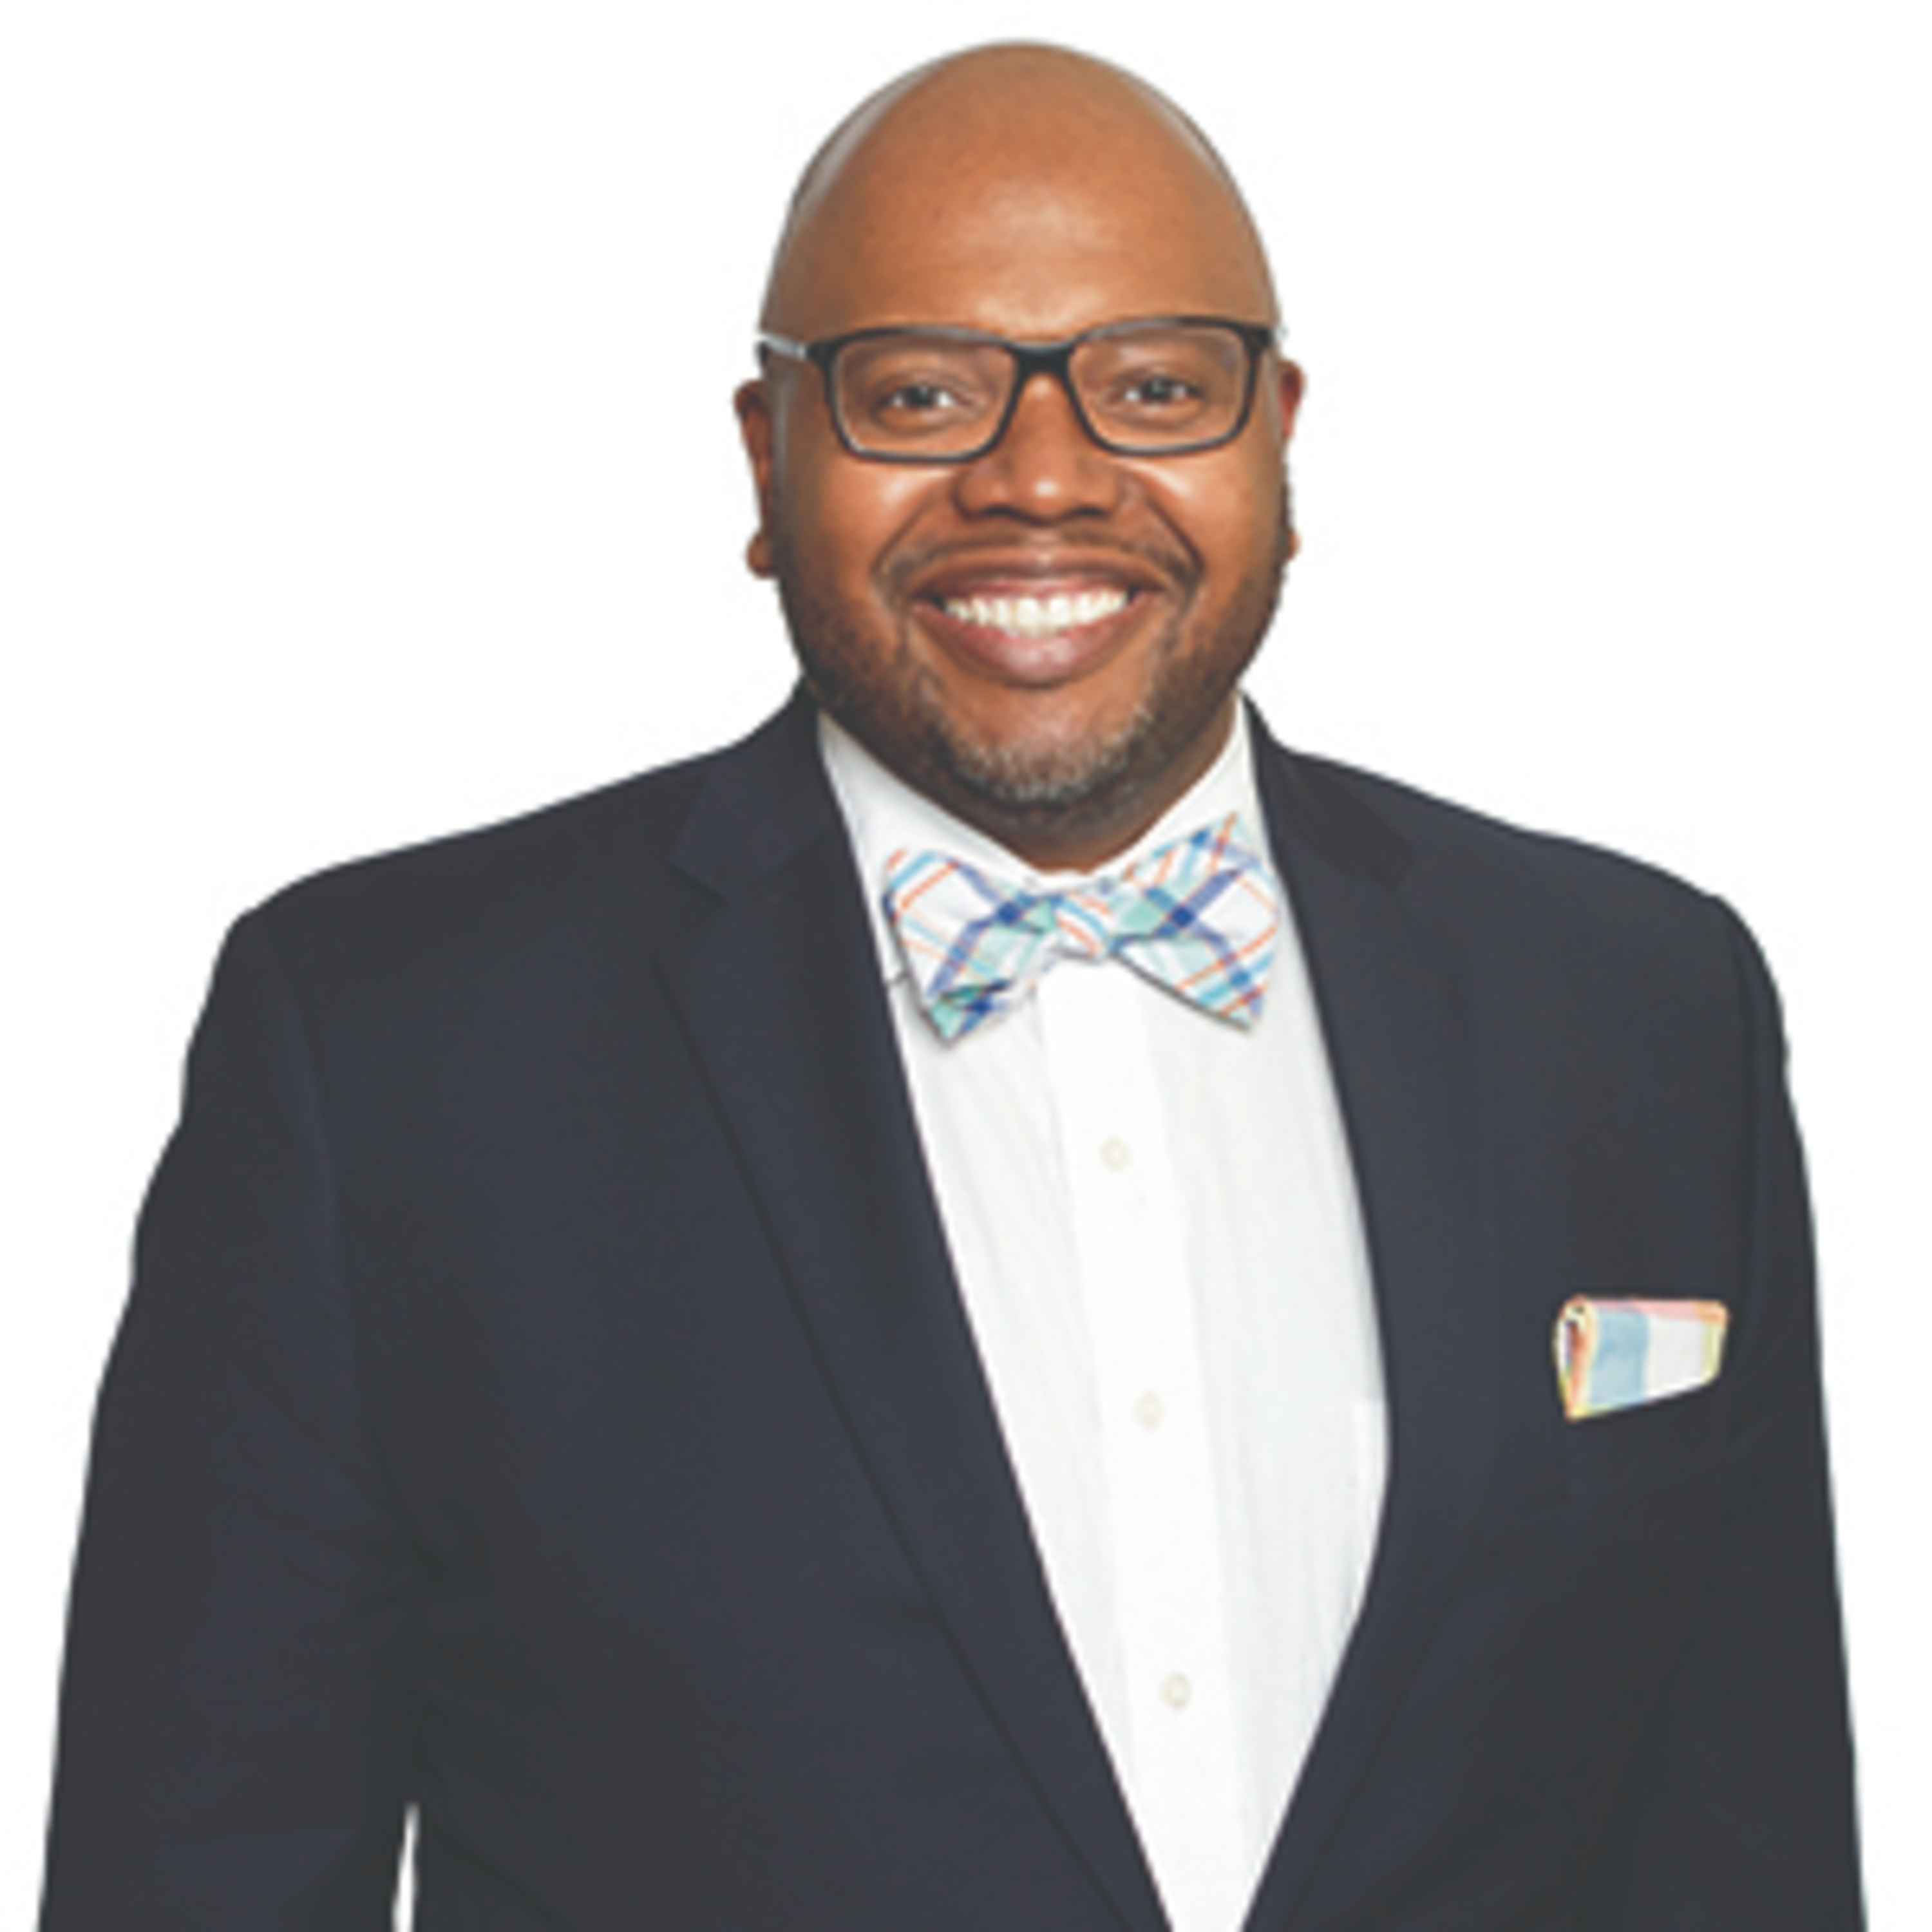 Andre Davison - Winning with Diversity and Technology